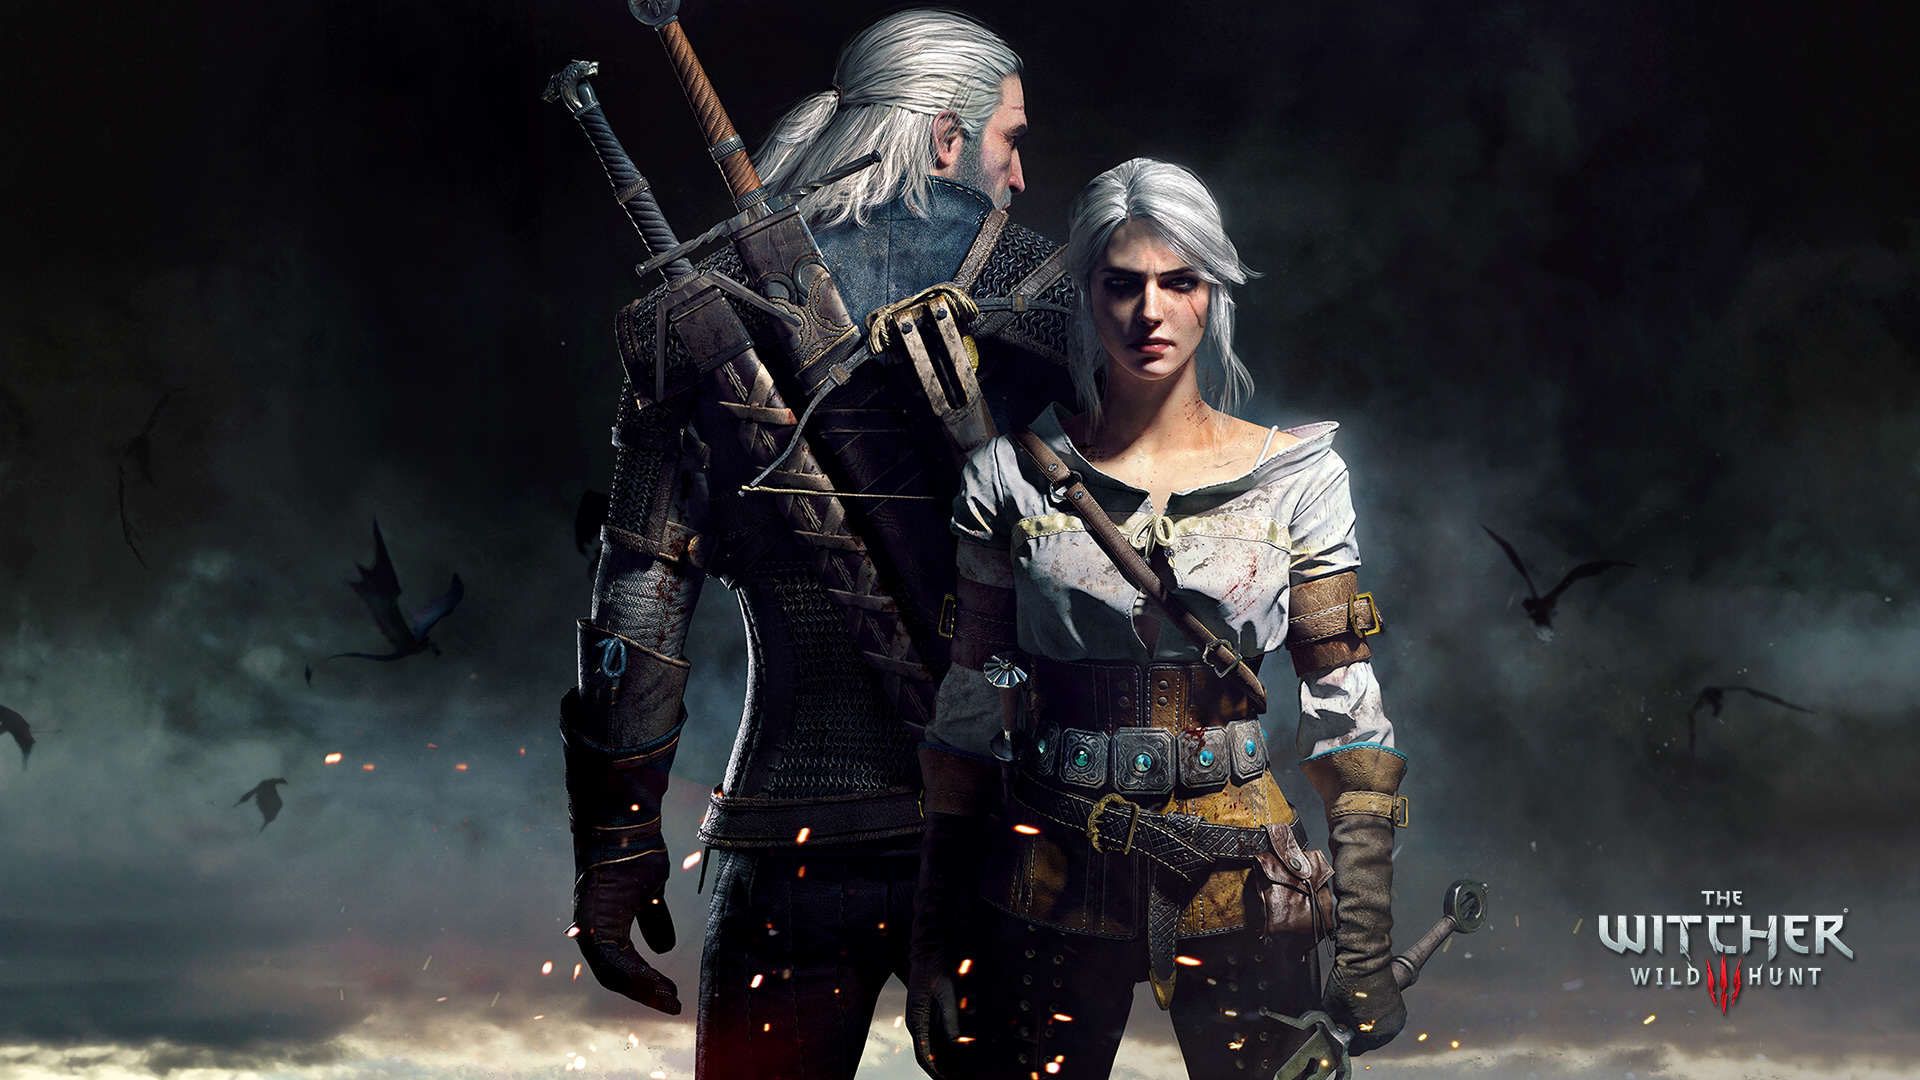 Witcher Series Future Dealt Massive Blow By Devs witcher3 en wallpaper wallpaper 10 1920x1080 1433327726